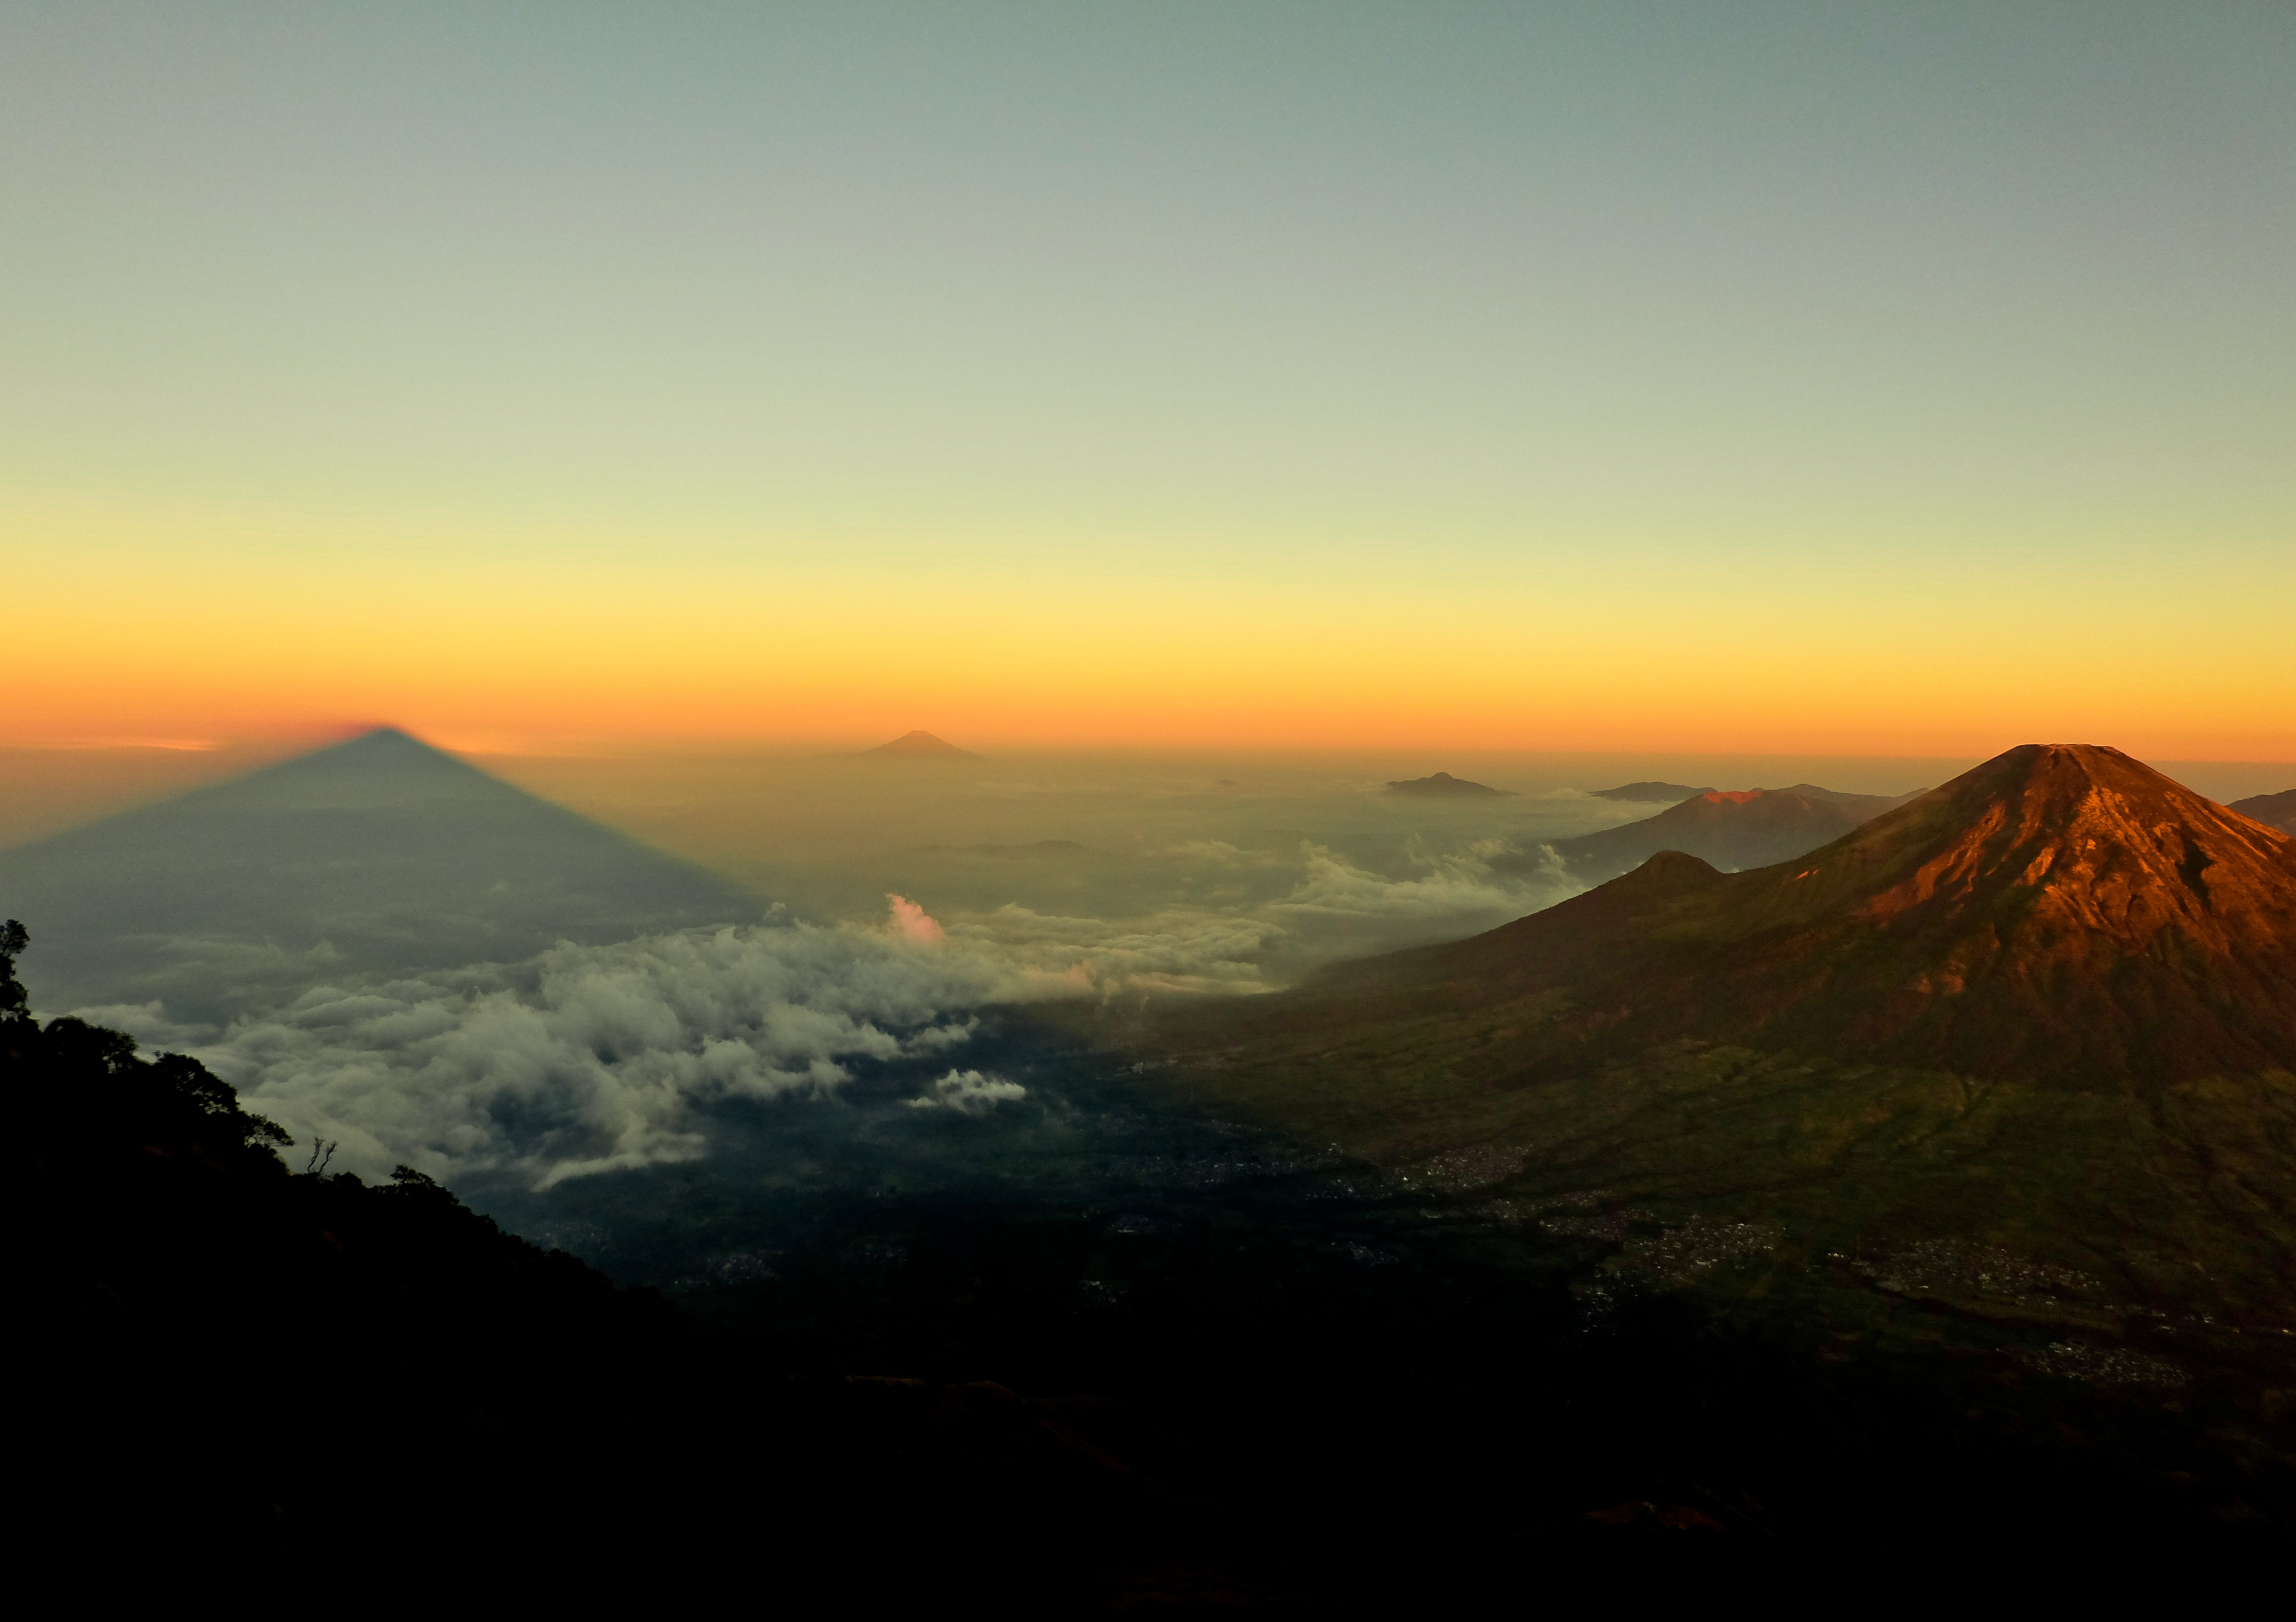 A volcano towering above a vast cloud-covered plain during sunset